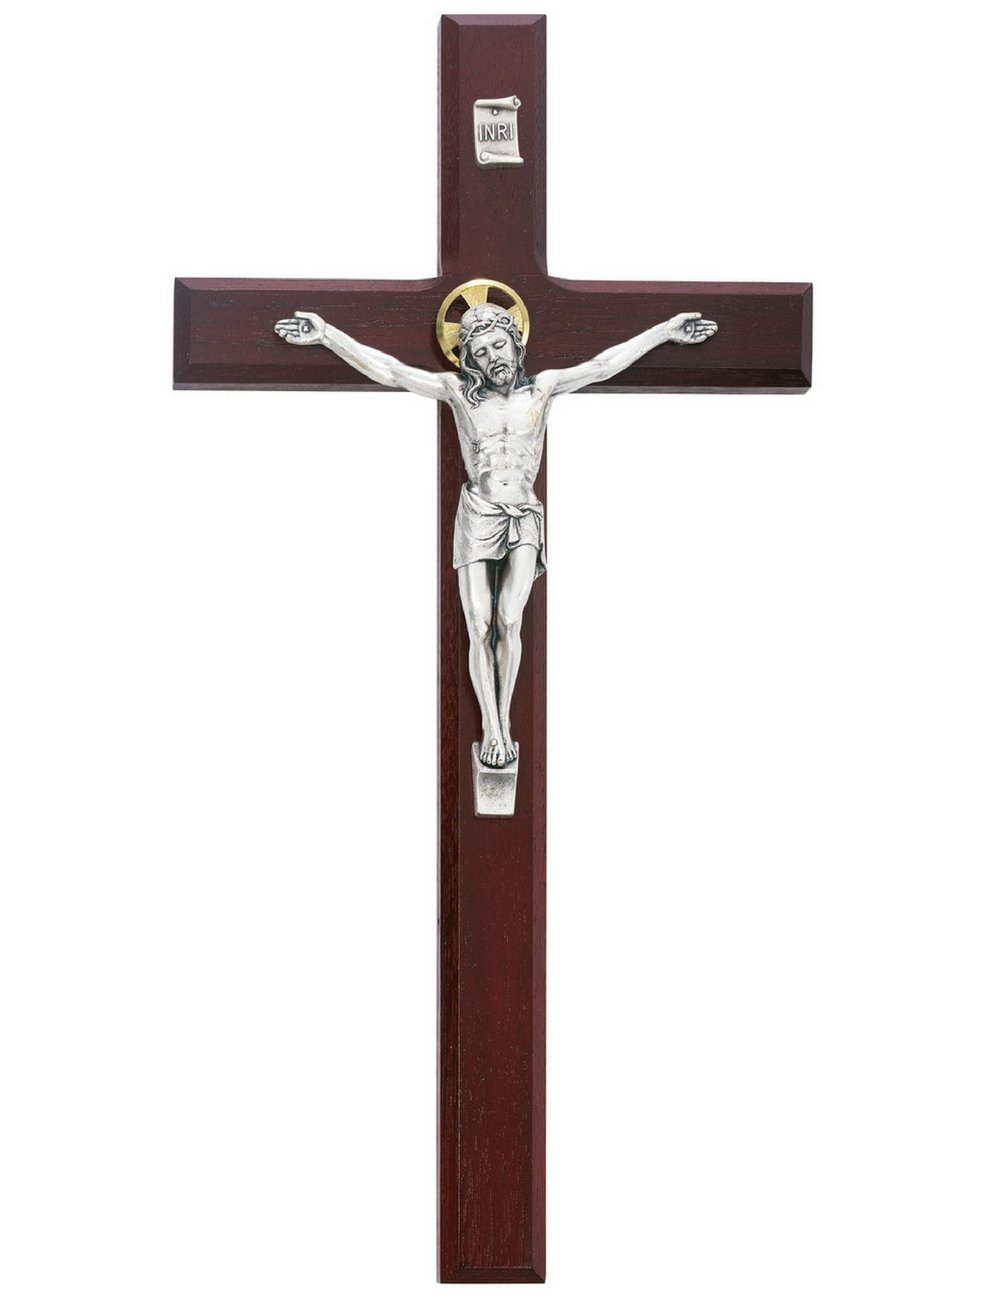 Beveled Cherry Wood Wall Crucifix Cross Silver Color Corpus Gold Color Halo 12 Inch